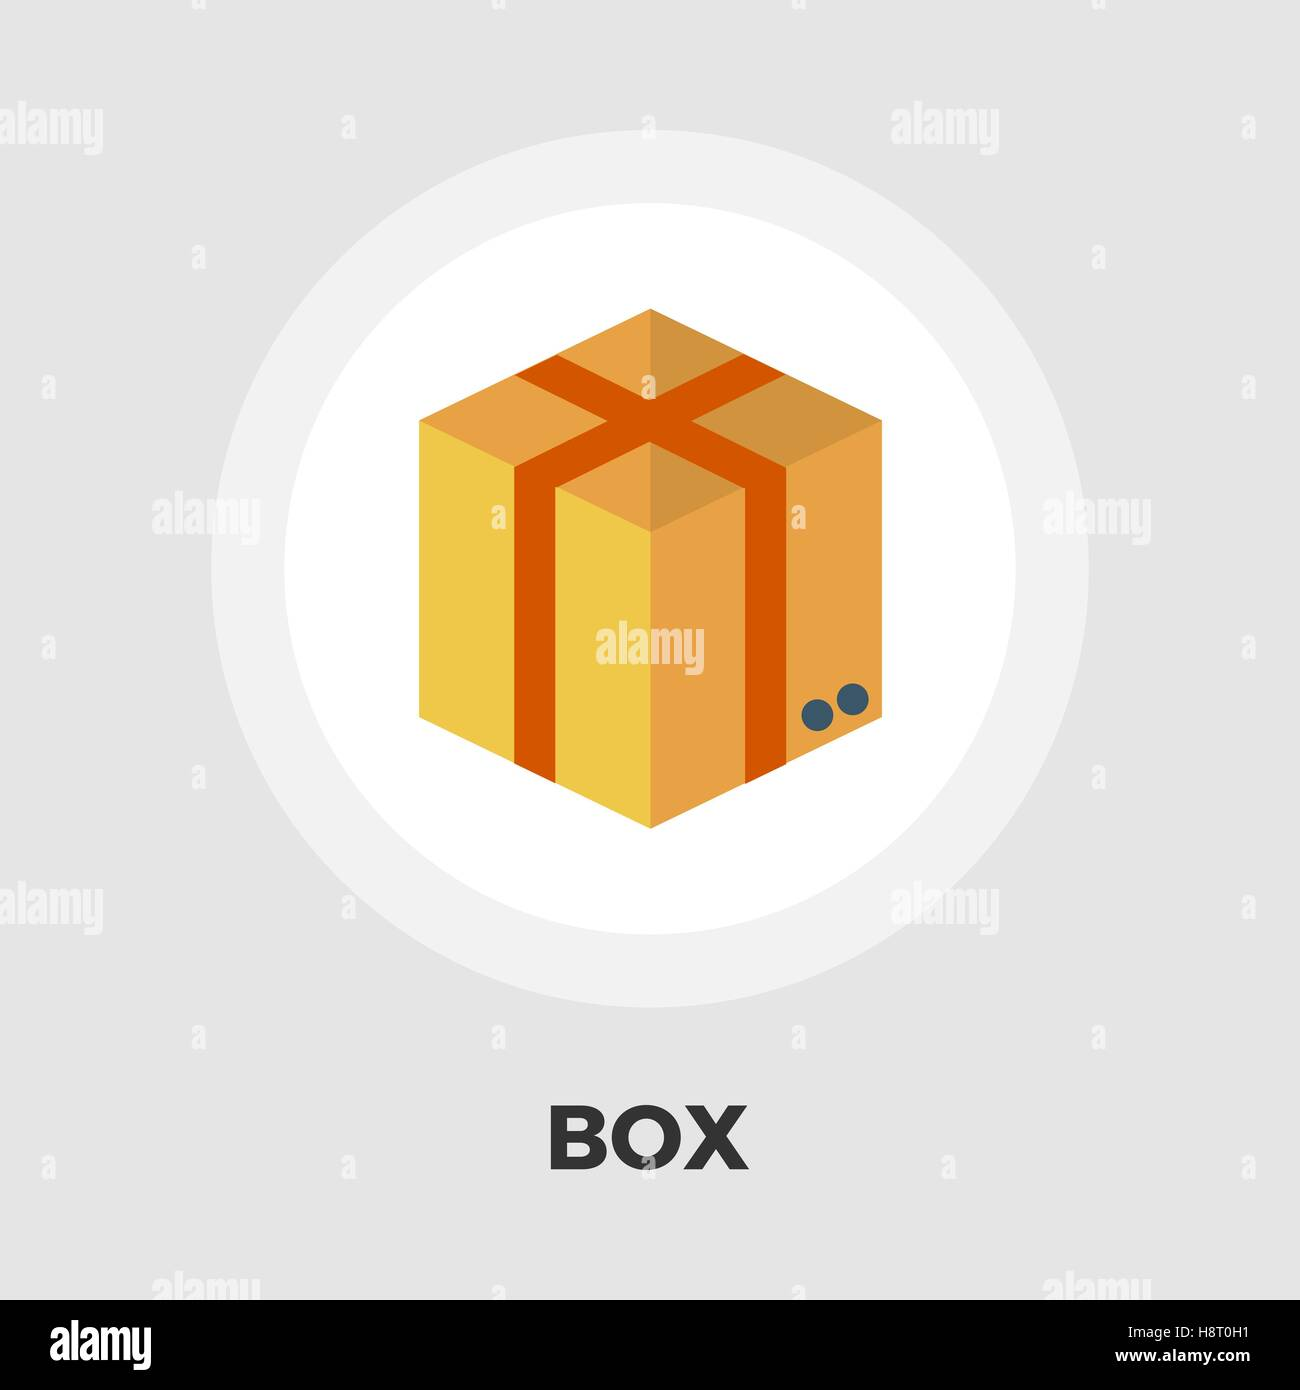 Cartoon Box icon vector. Flat icon isolated on the white background. Editable EPS file. Vector illustration. - Stock Image